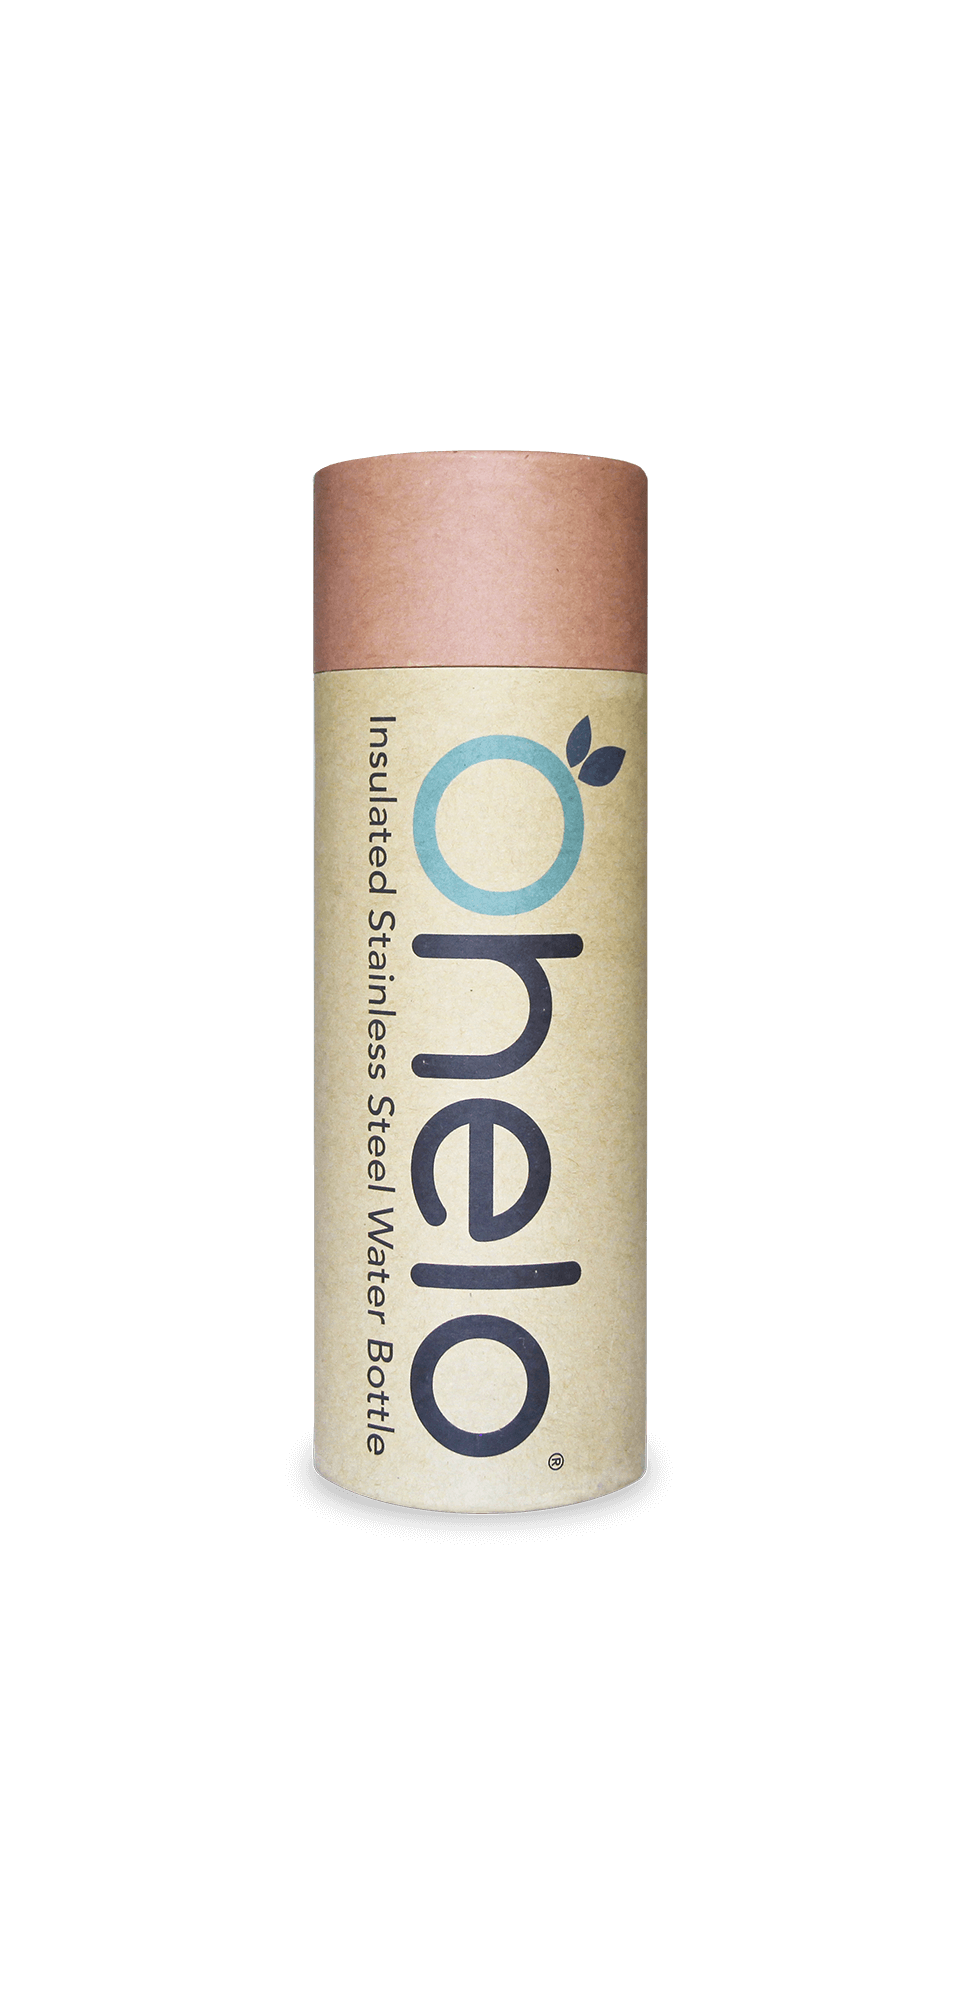 Ohelo pink water bottle box